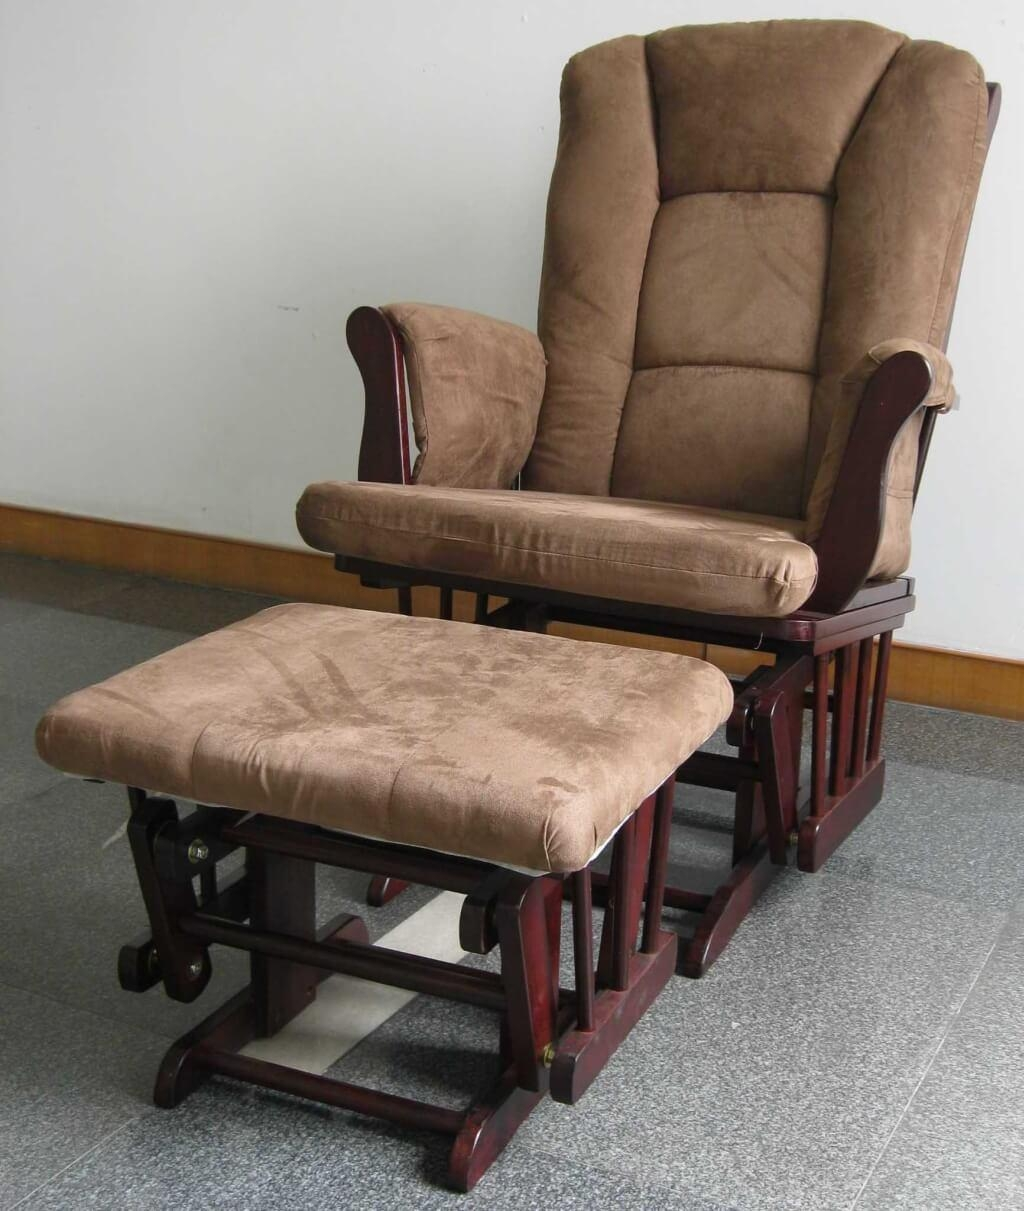 Sofa Brown Rocking Chair For Nursery | Tamingthesat With Sofa Rocking Chairs (Image 13 of 20)